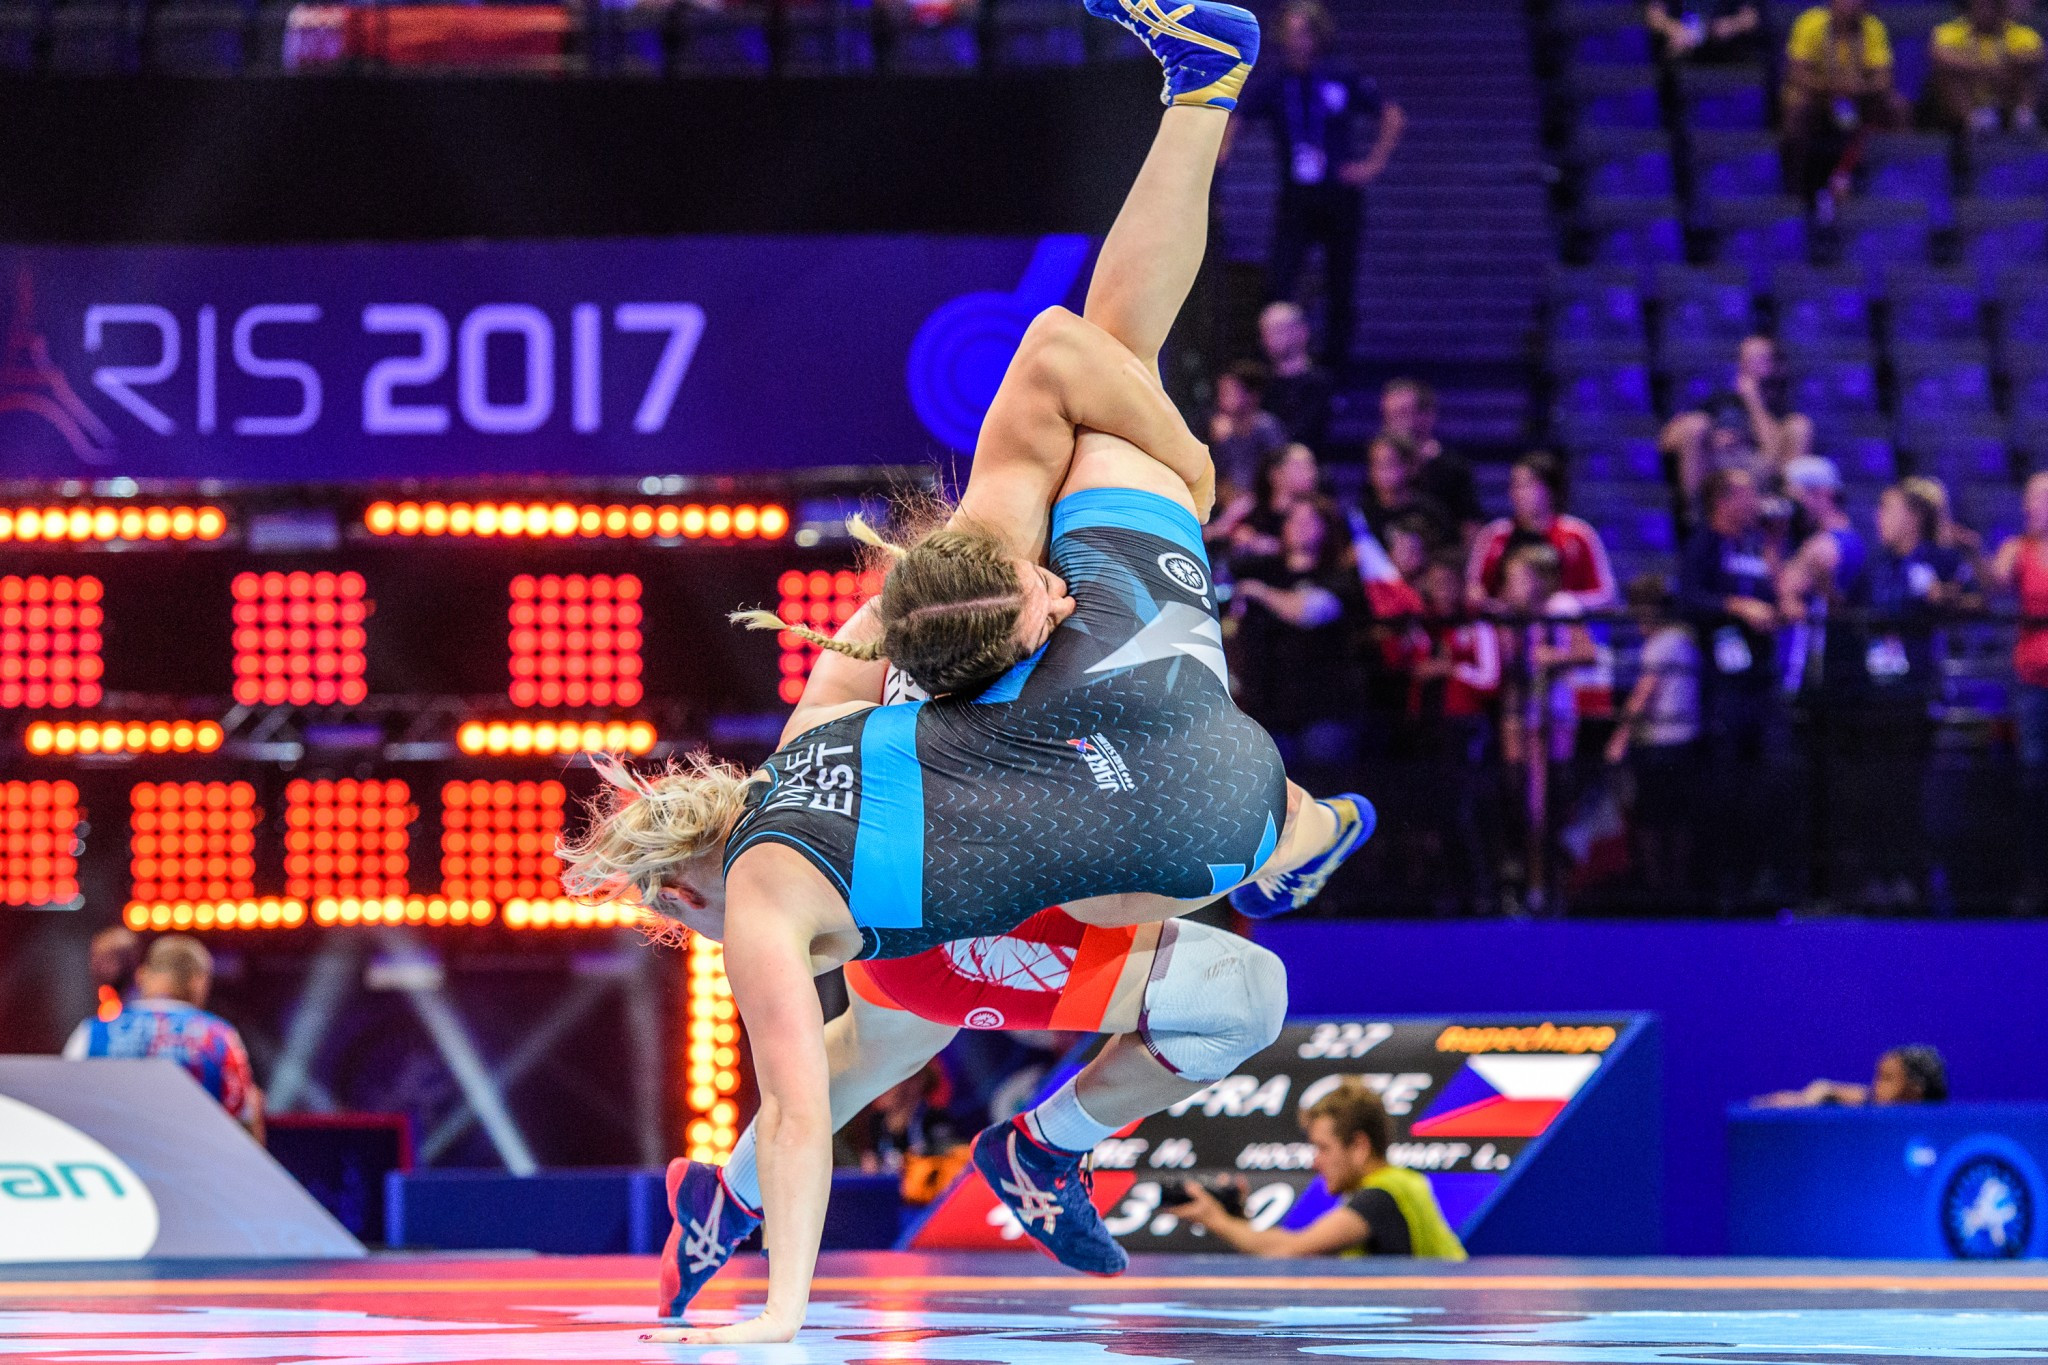 UWW Wrestling World Championships 2017: Day four of competition